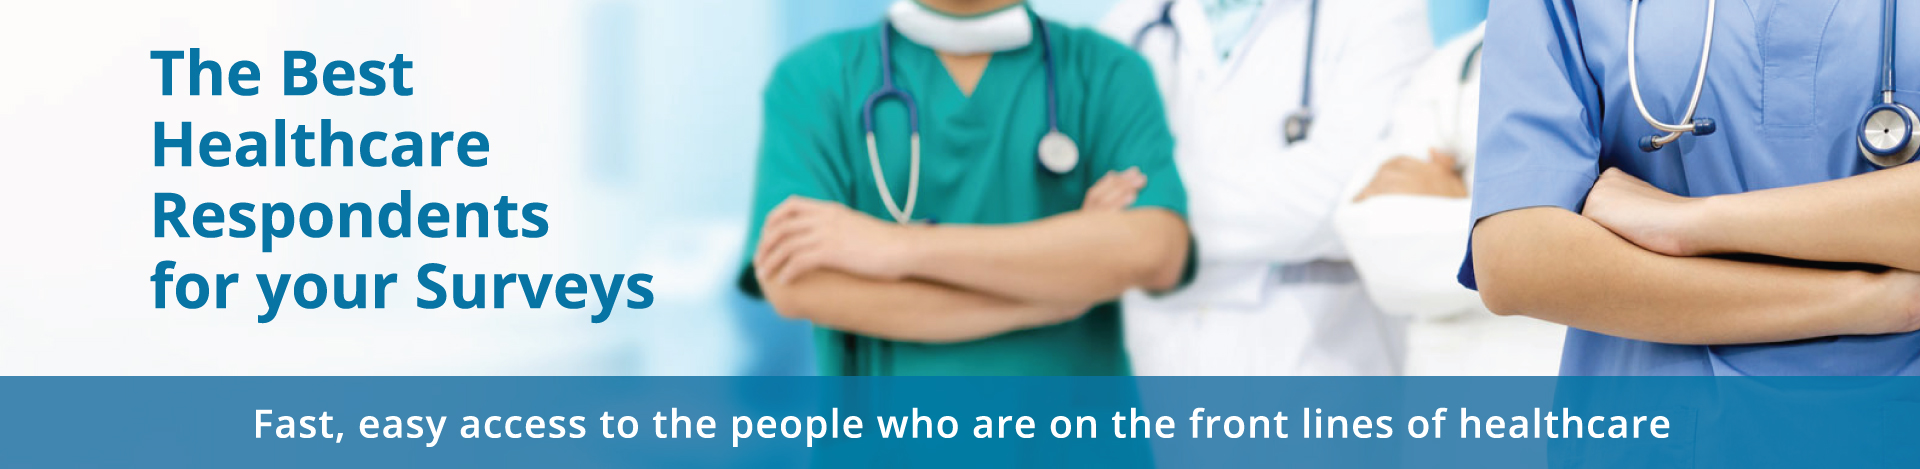 The Best Healthcare Respondents for your Surveys. Fast, easy access to the people who are on the front lines of healthcare